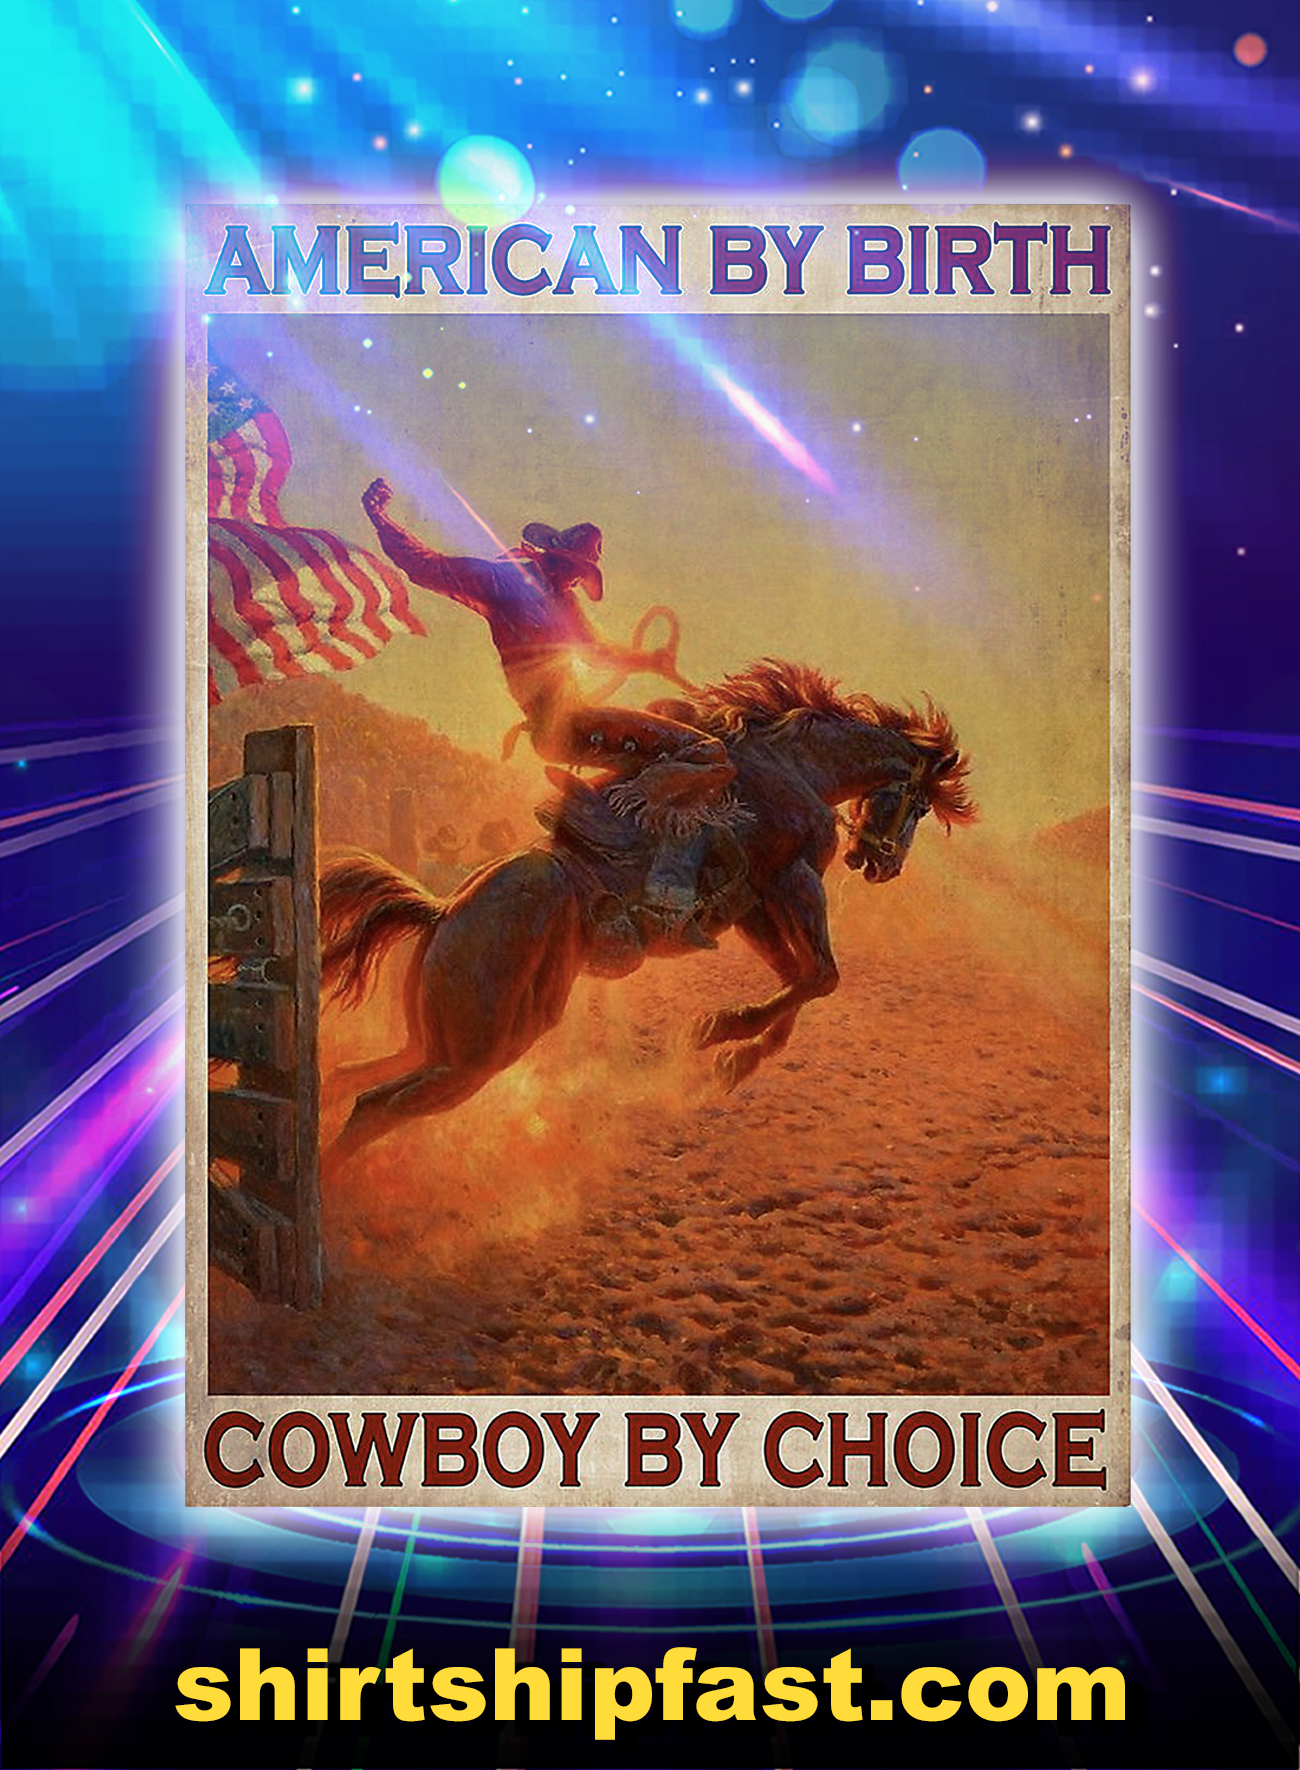 American by birth cowboy by choice poster - A4